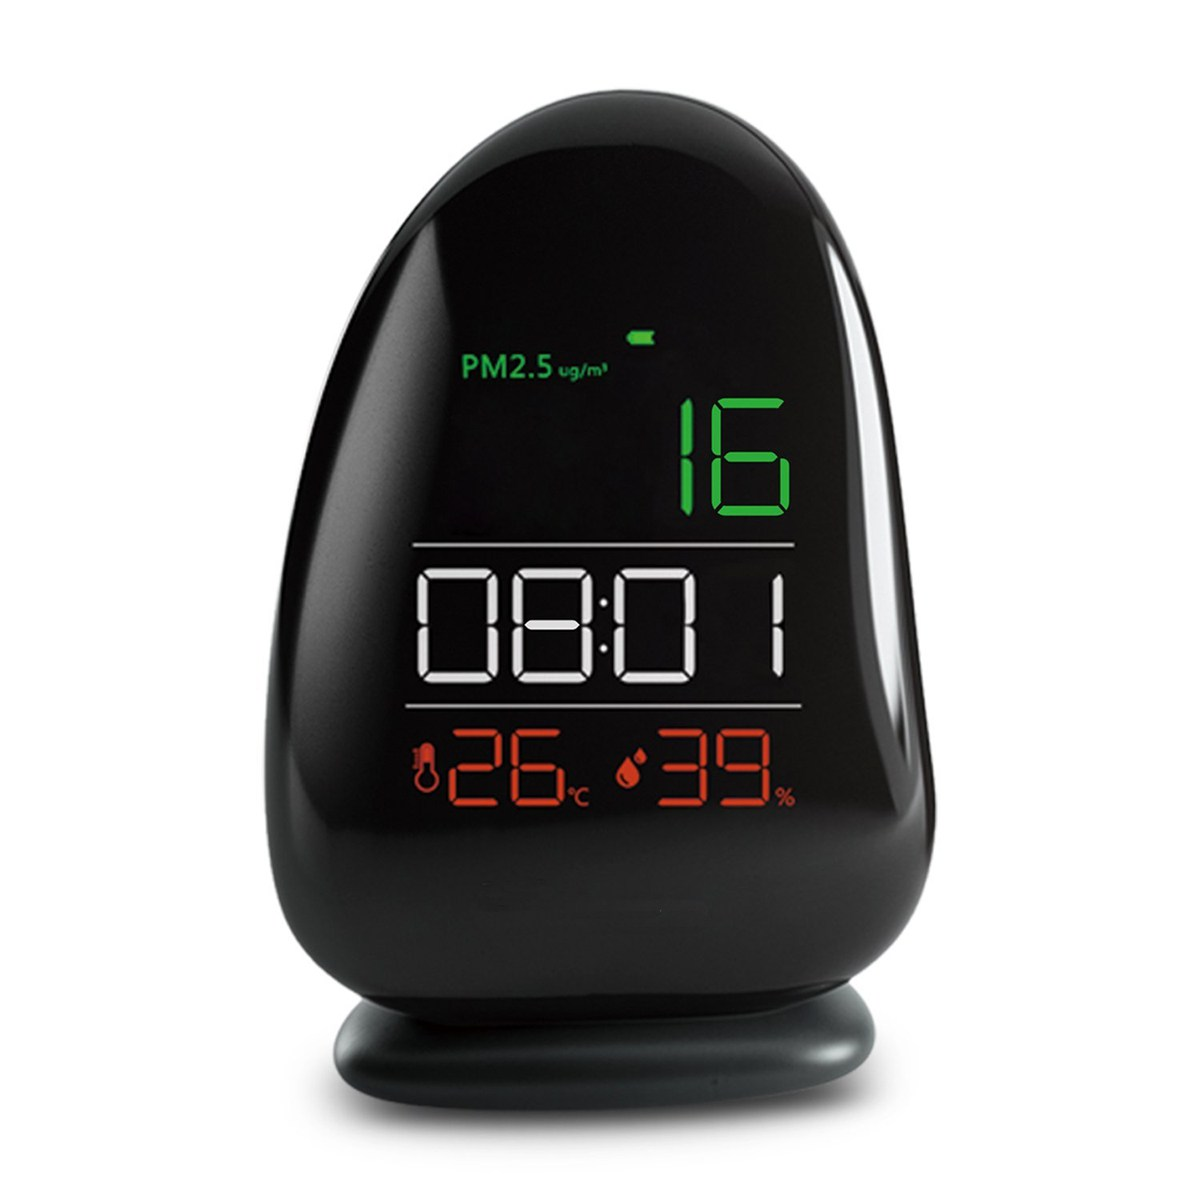 PM2.5 Laser Sensor Detector Air Quality Monitor Meter w/ Temperature/Level/RH humidity/Time Gas Analyzers For Home Office School digital carbon dioxide monitor indoor air quality co2 meter temperature rh humidity twa stel 99 points memory taiwan made